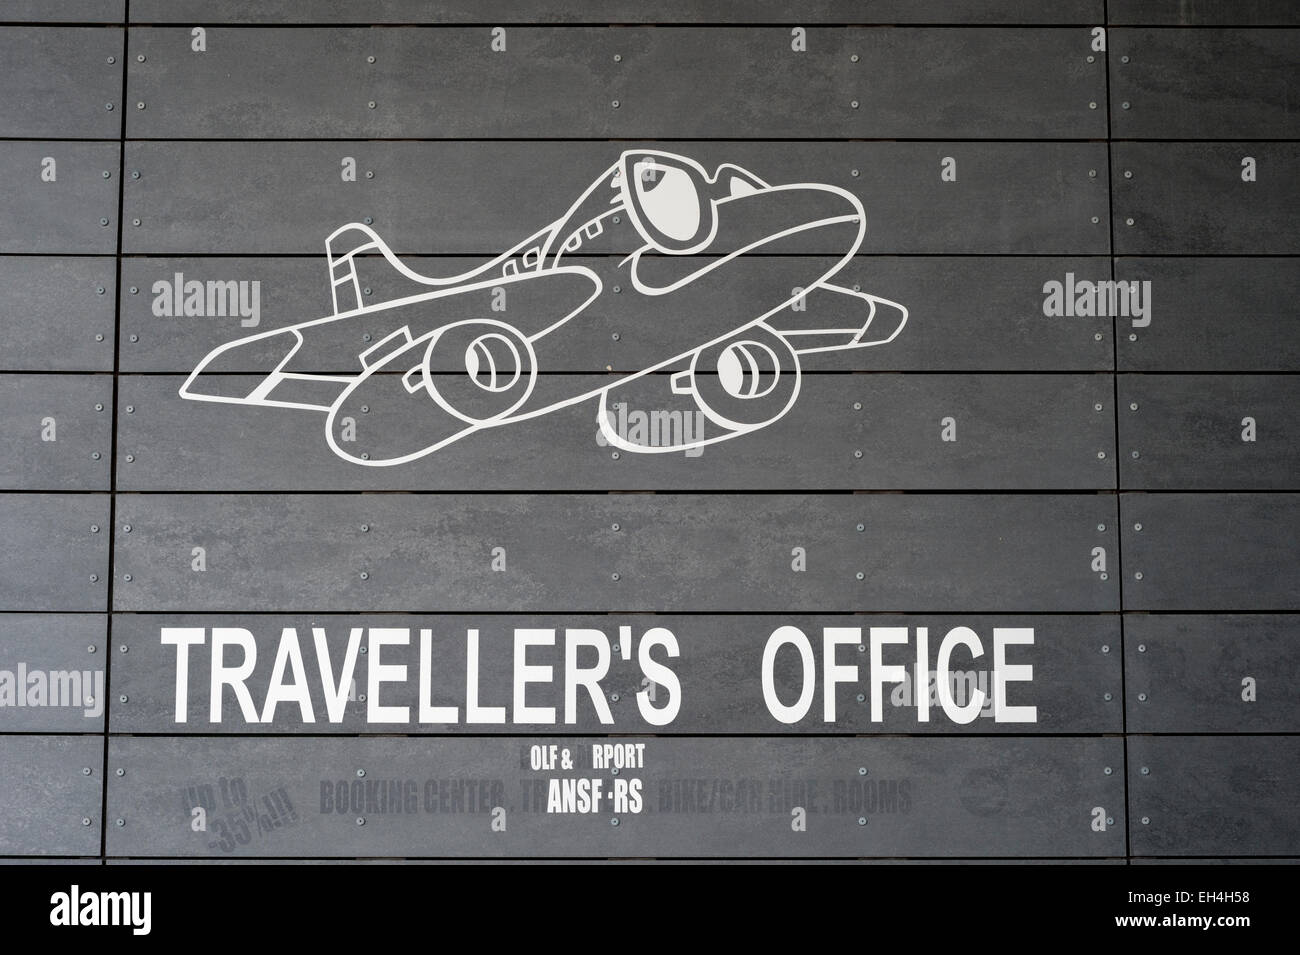 Traveller's office logo and sign with aeroplane in Portugal - Stock Image